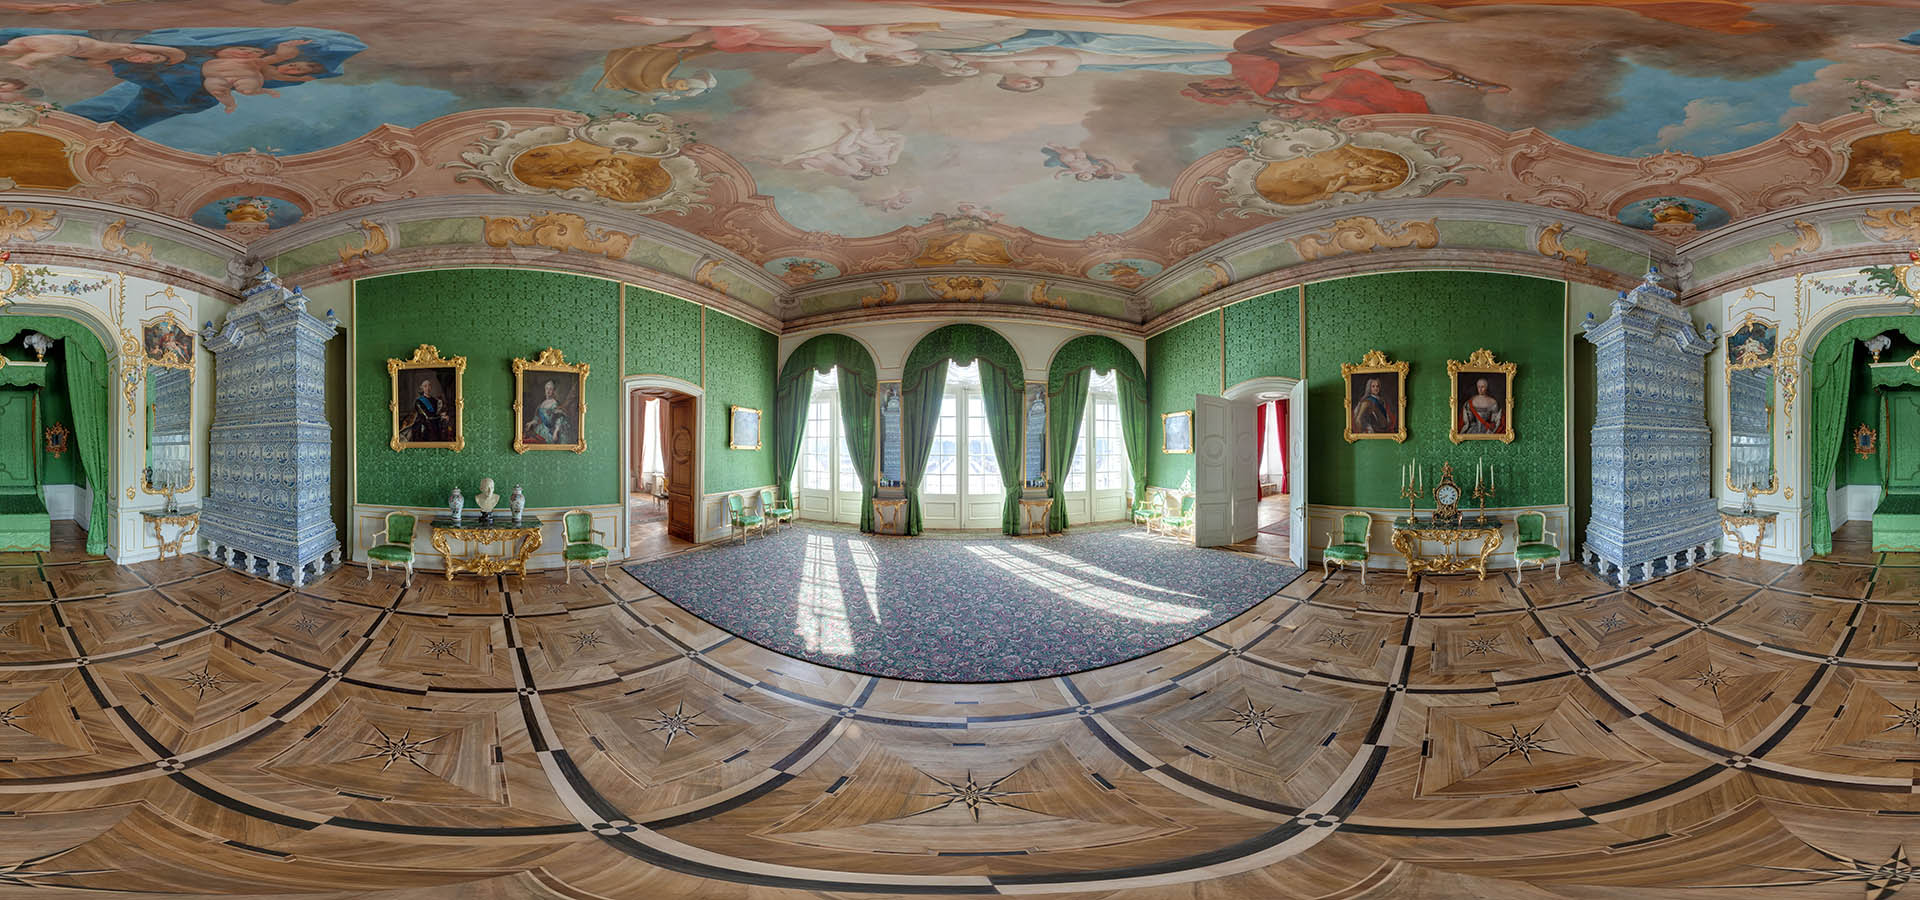 Rundale_Palace_Baroque_Historical_Virtual_Tours_OCEAN.LV_